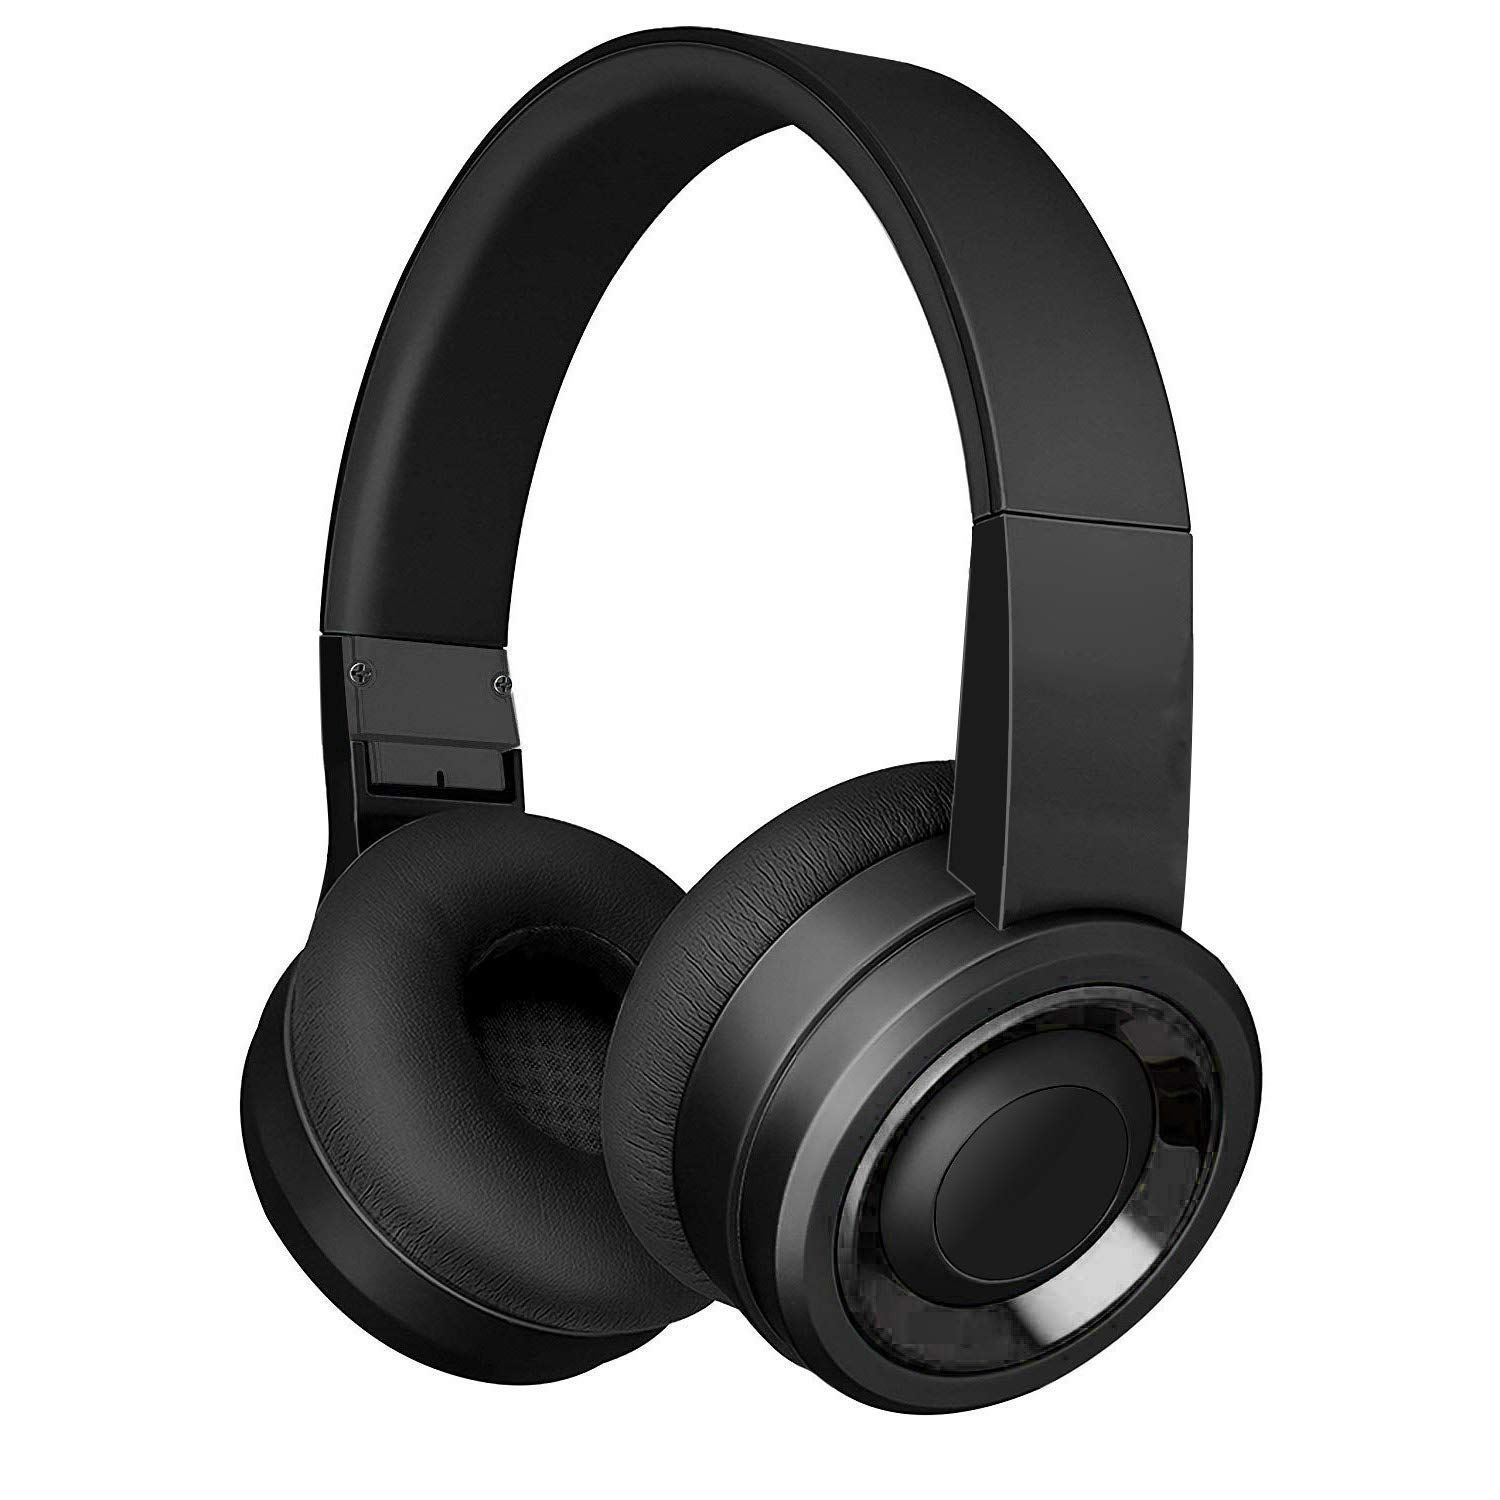 Bluetooth Headphones with Built-in Mic, Wireless and Wired Over-Ear Headset with Comfortable Earpad for PC, Tablets and Smartphones (Black)